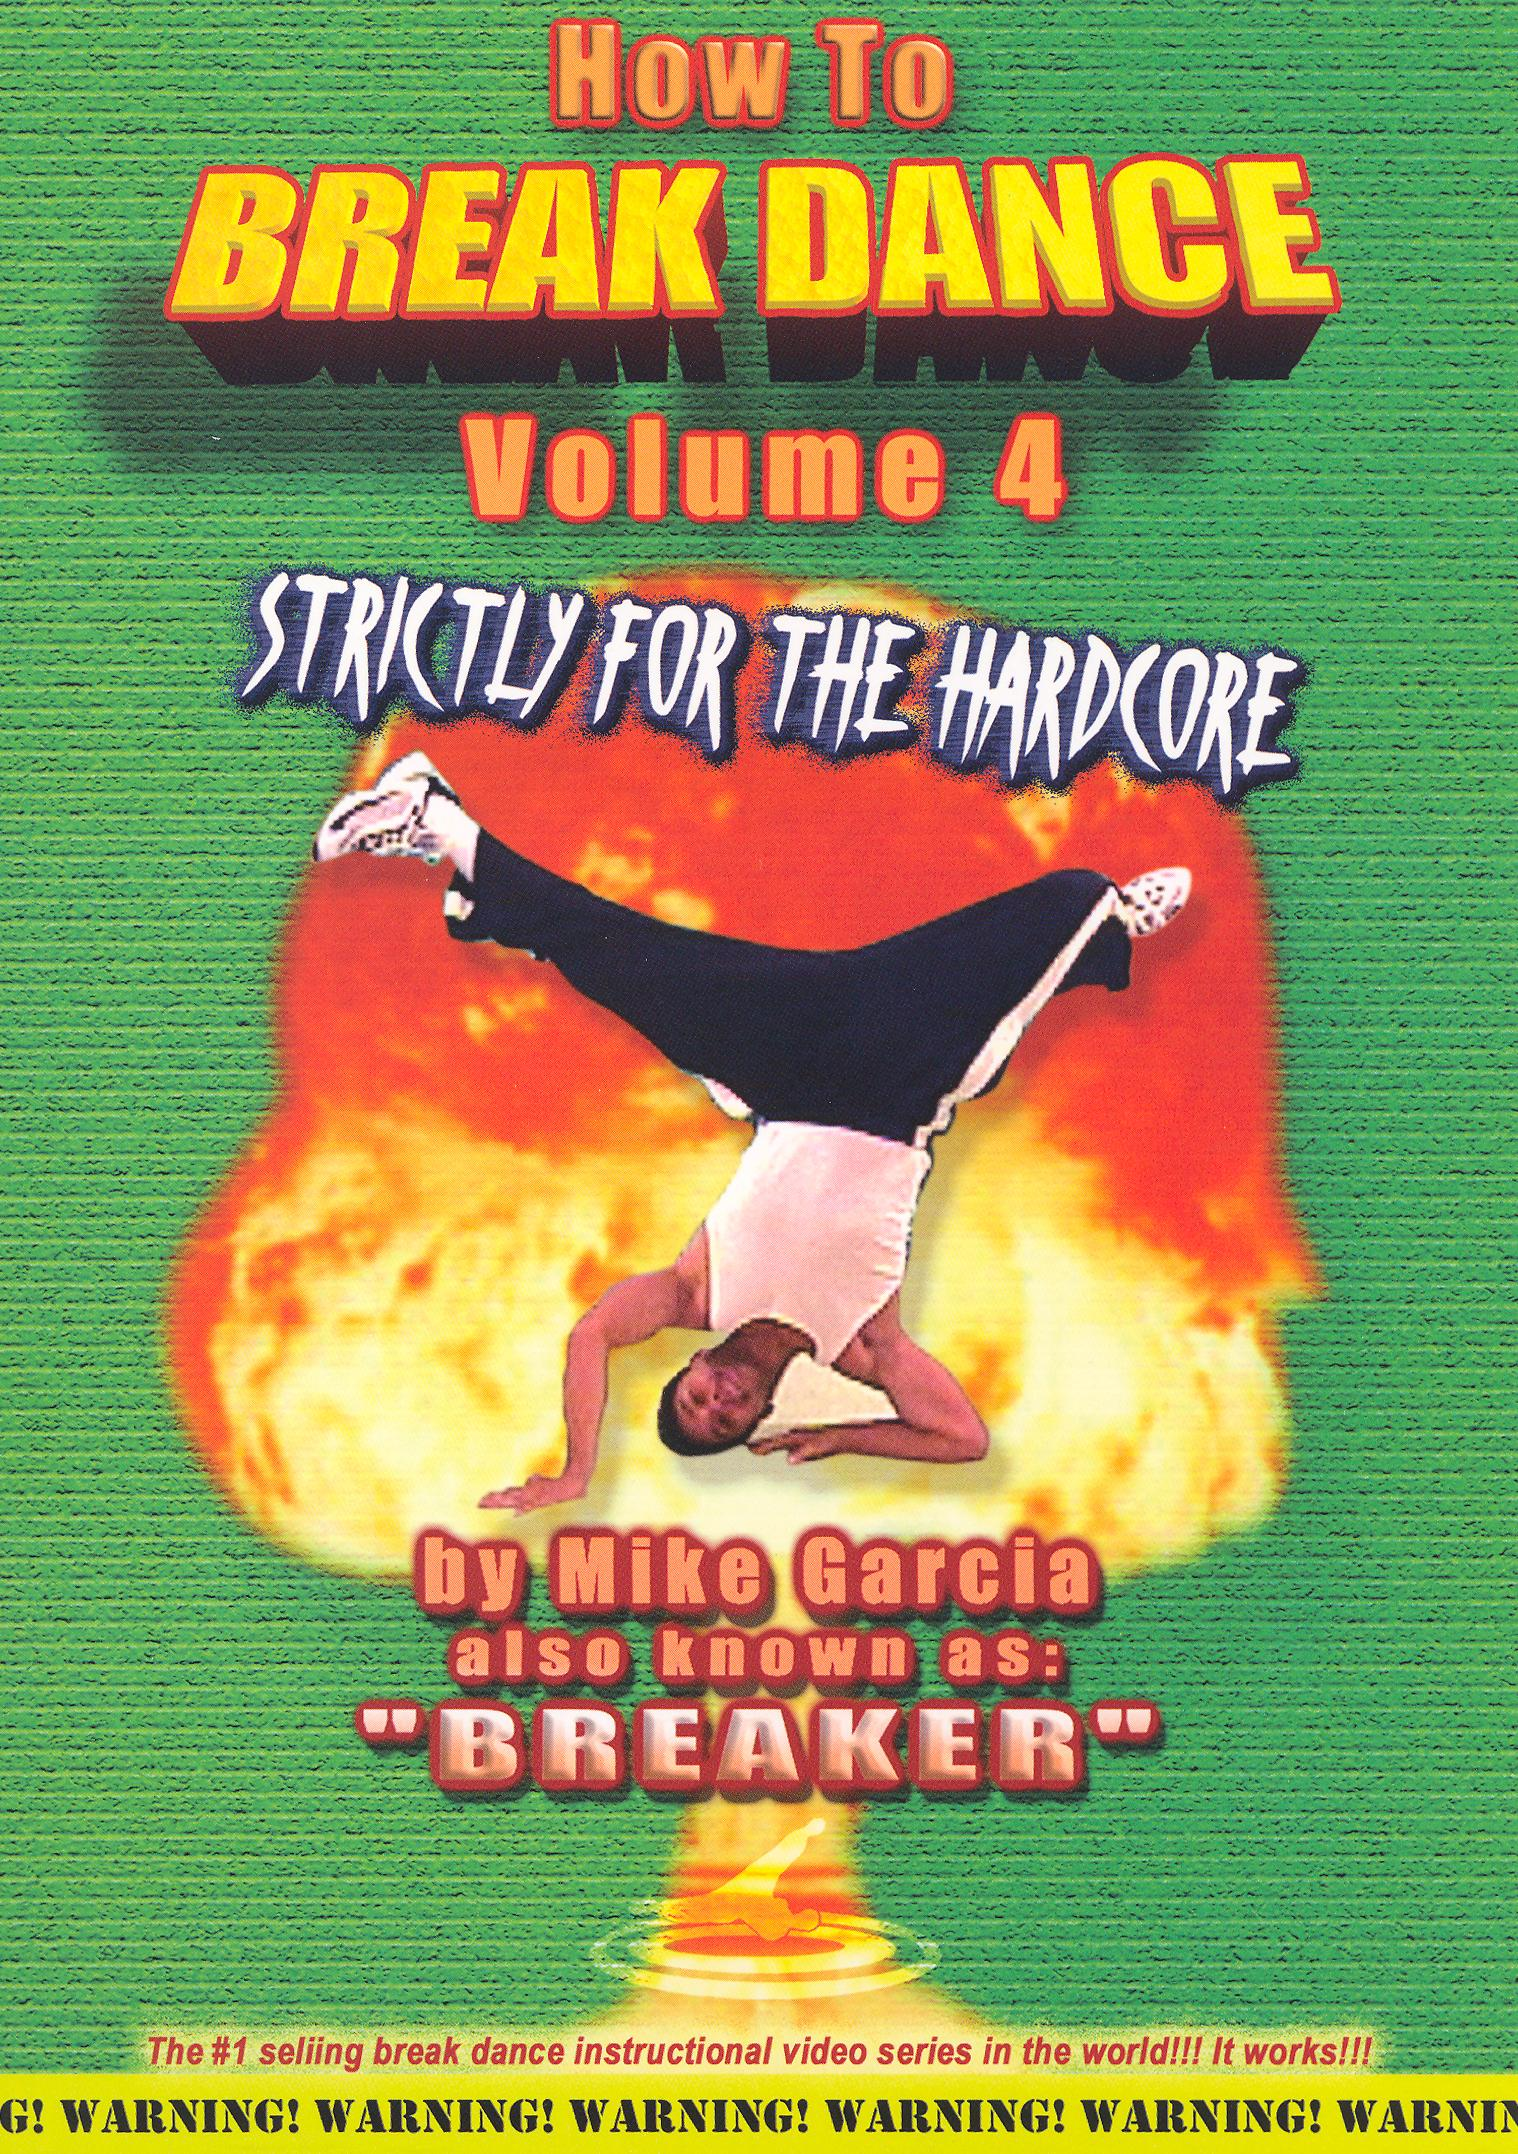 How to Breakdance, Vol. 4